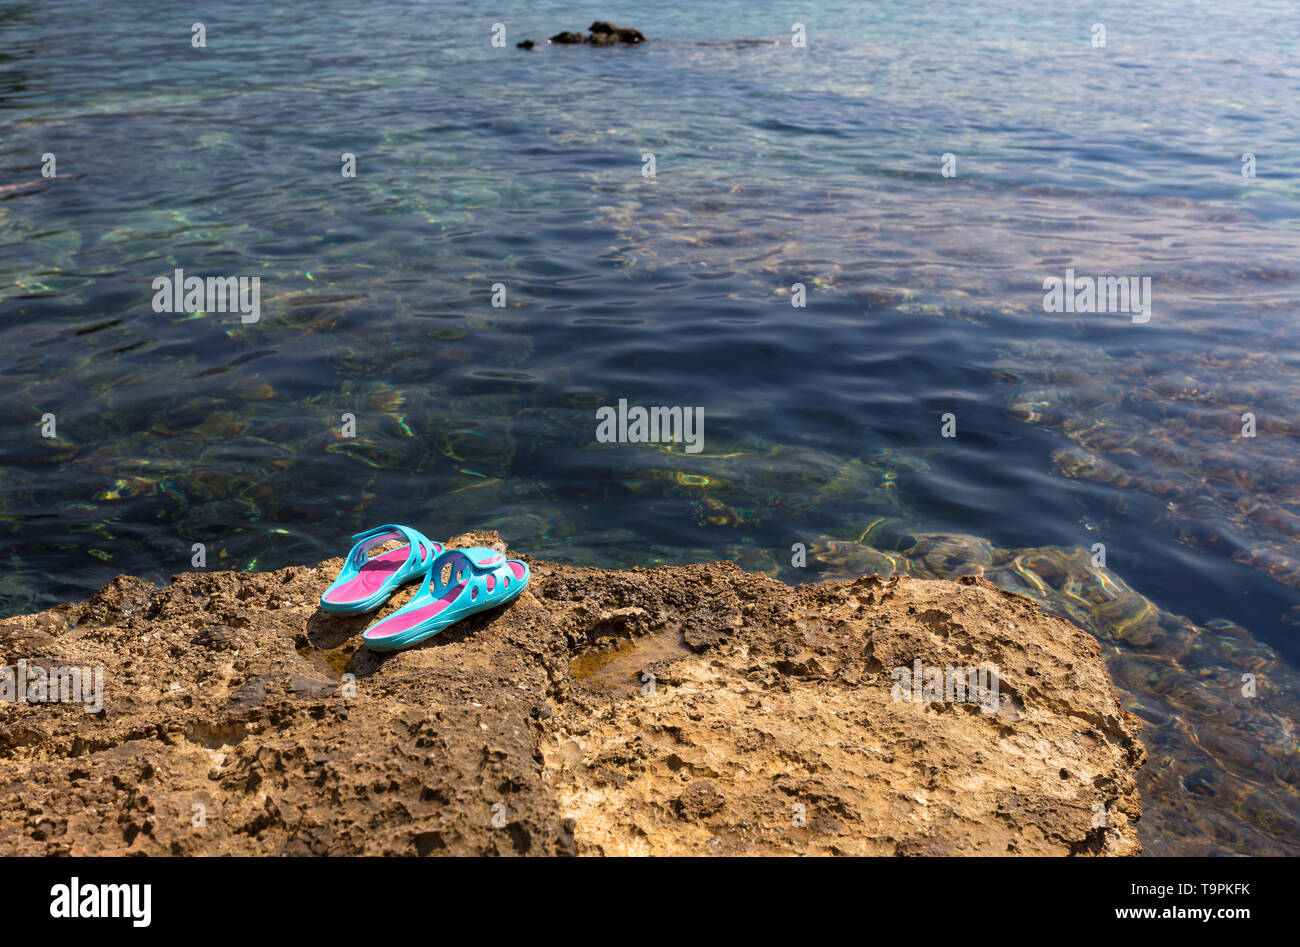 Beach women's slippers of bright turquoise color lie on a sea stone near the transparent waters of the Adriatic Sea - Stock Image